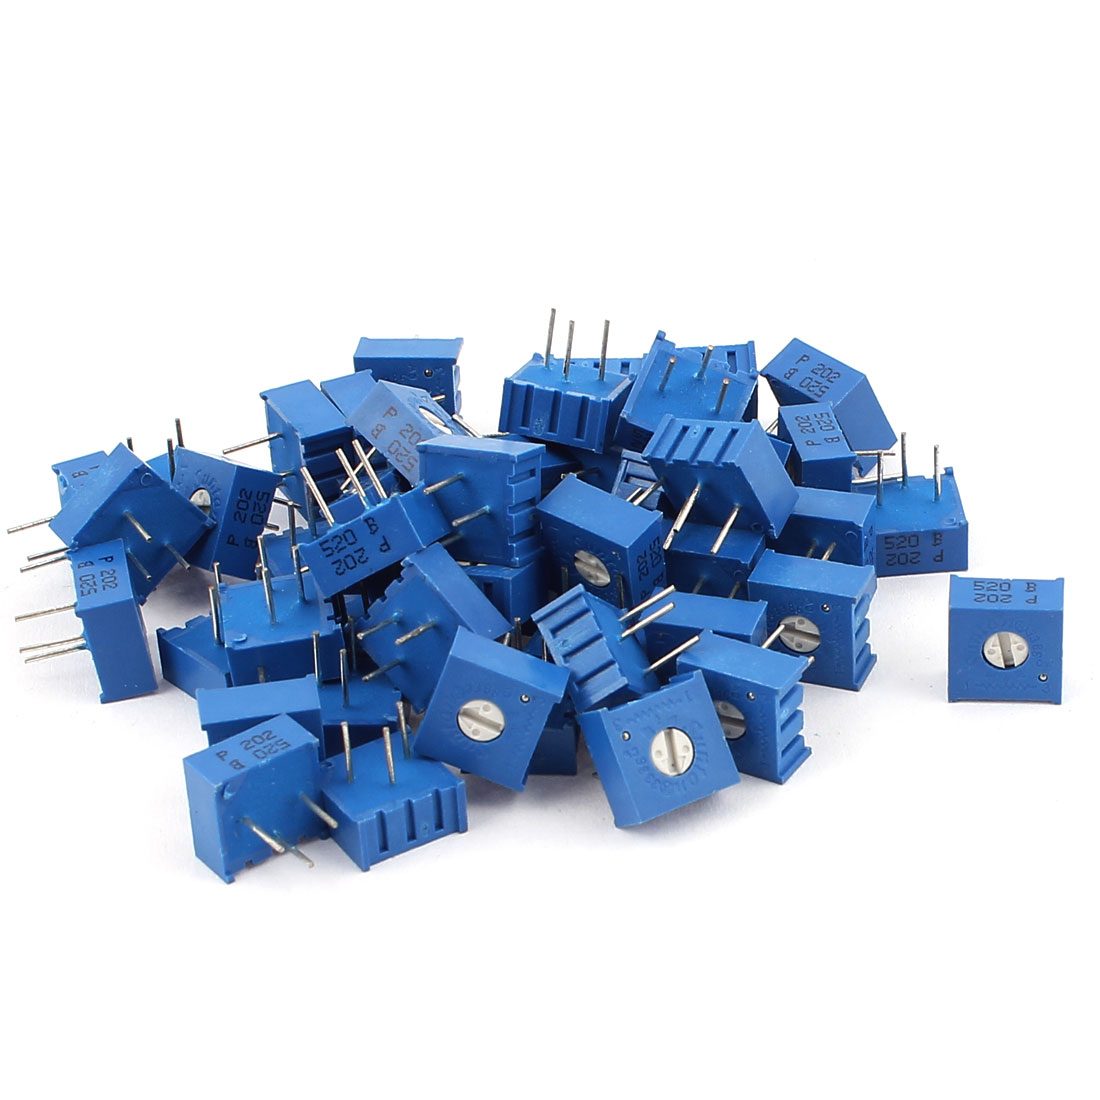 50Pcs Top Adjustment Trimmer Pot Potentiometer Resistors 2K Ohm 3386P